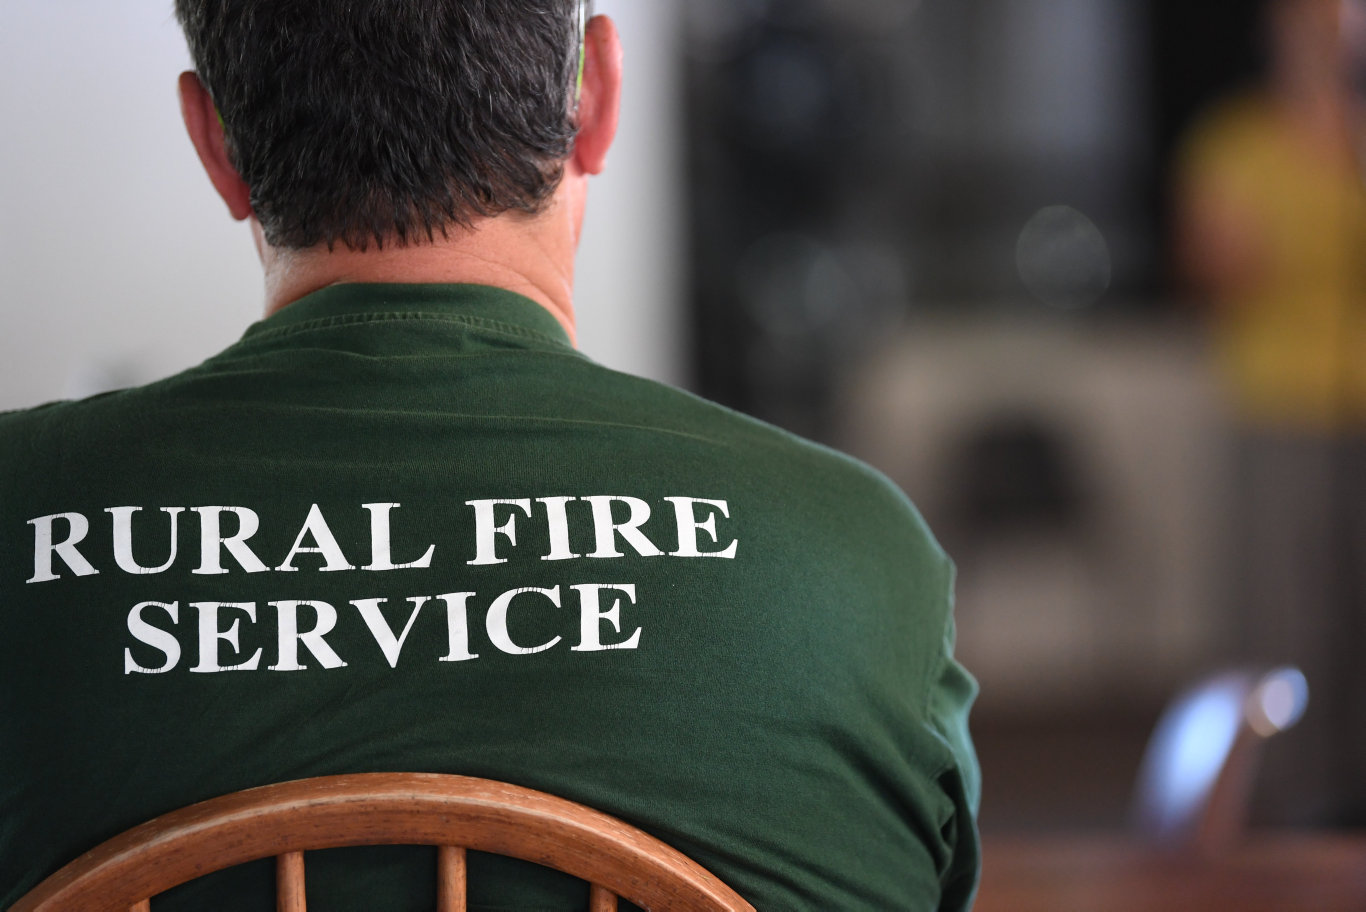 Do you have a fire survival plan?